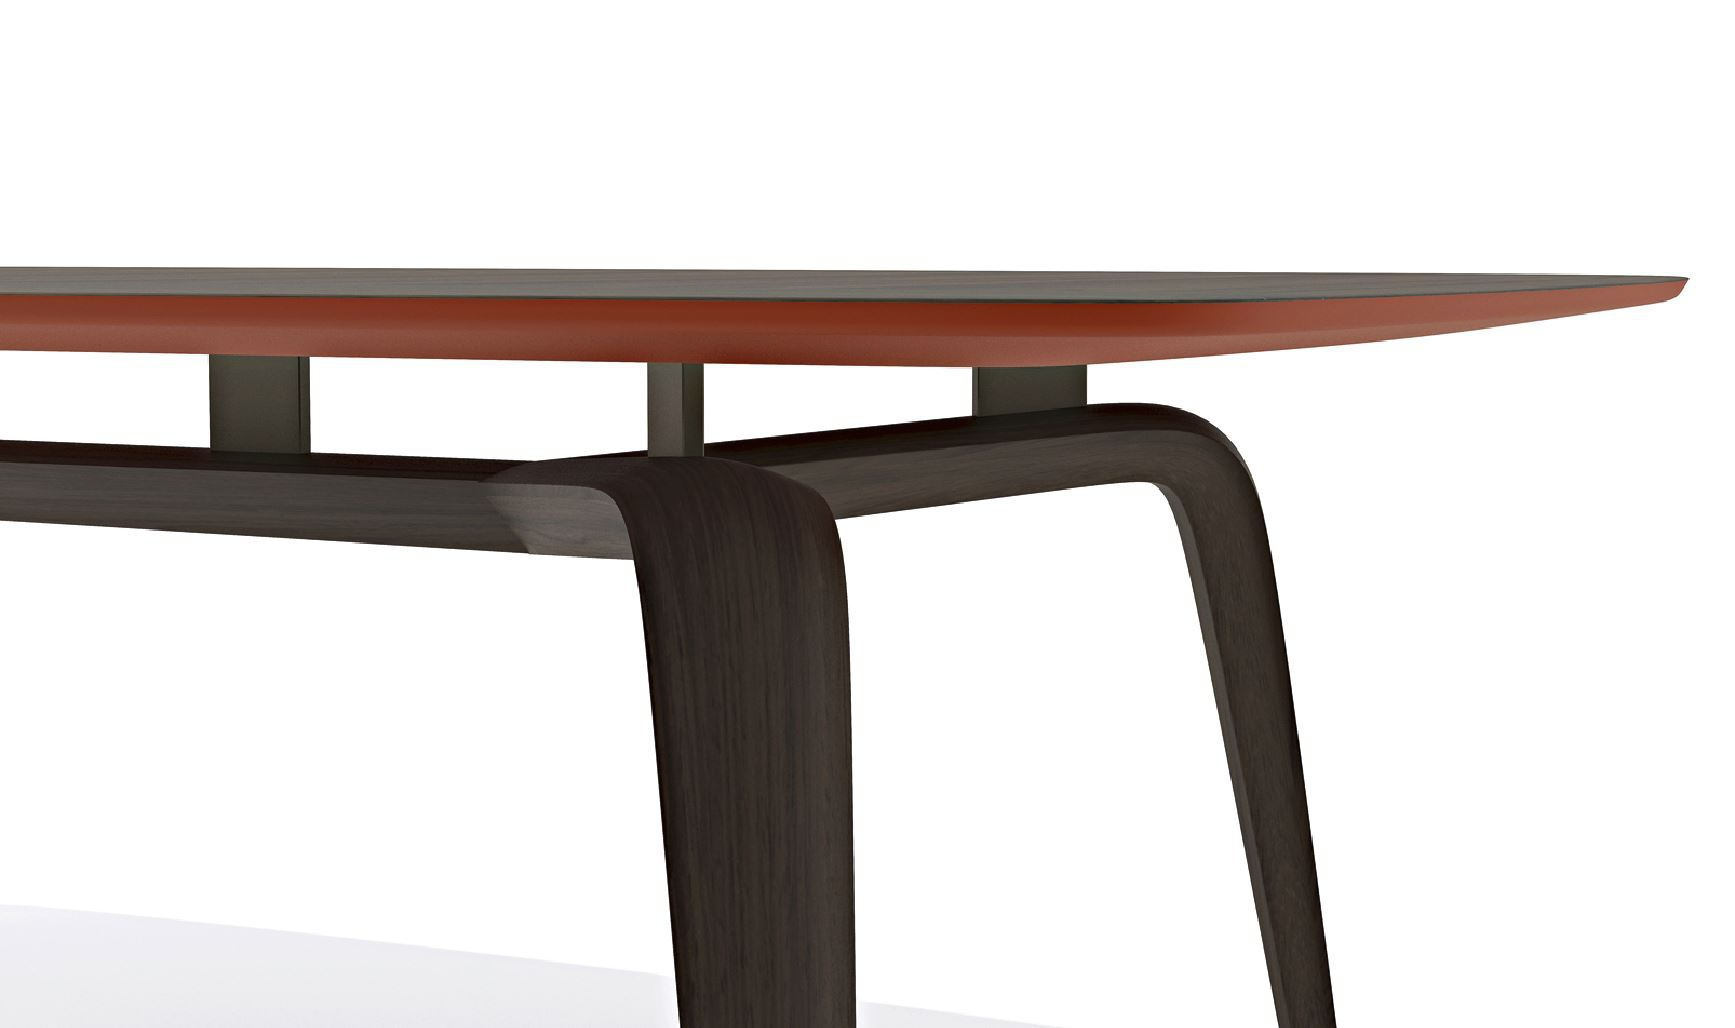 Dining Table Wooden Frame With A Rectangular Tabletop